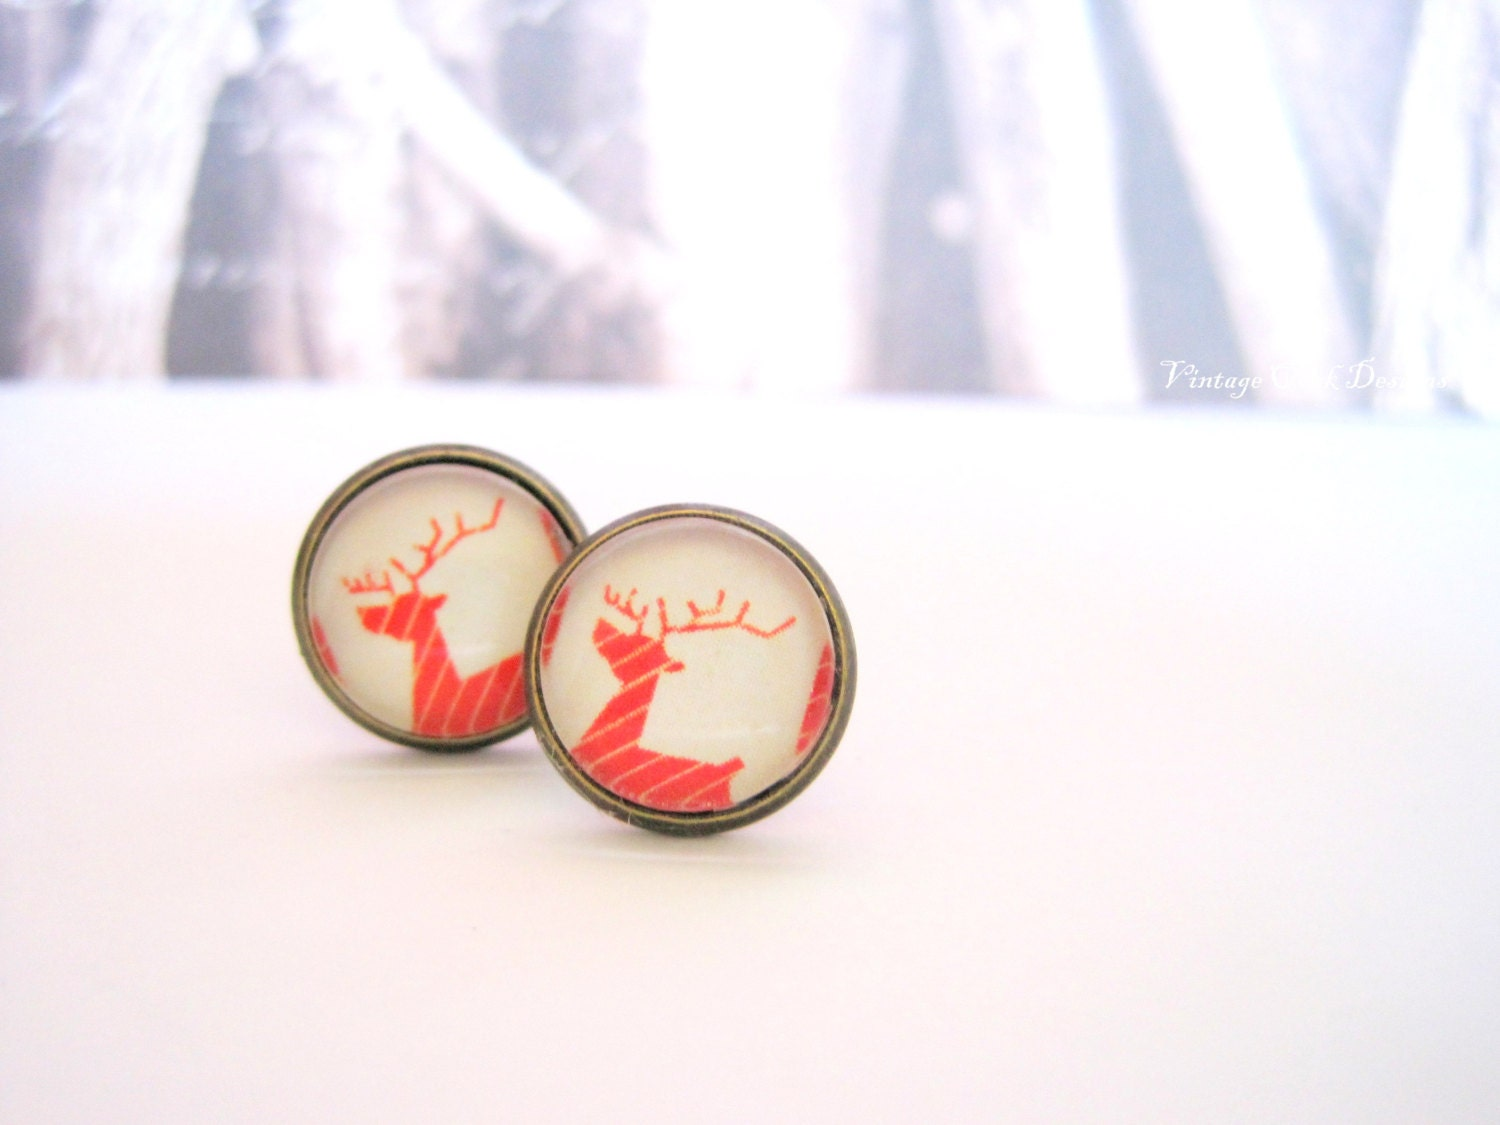 Reindeer Earrings, Nordic Earrings, Christmas Earrings ,Reindeer Studs, Christmas gift Idea, Christmas Jewelry, Gift for her, Winter Trends - VintageOoakDesigns